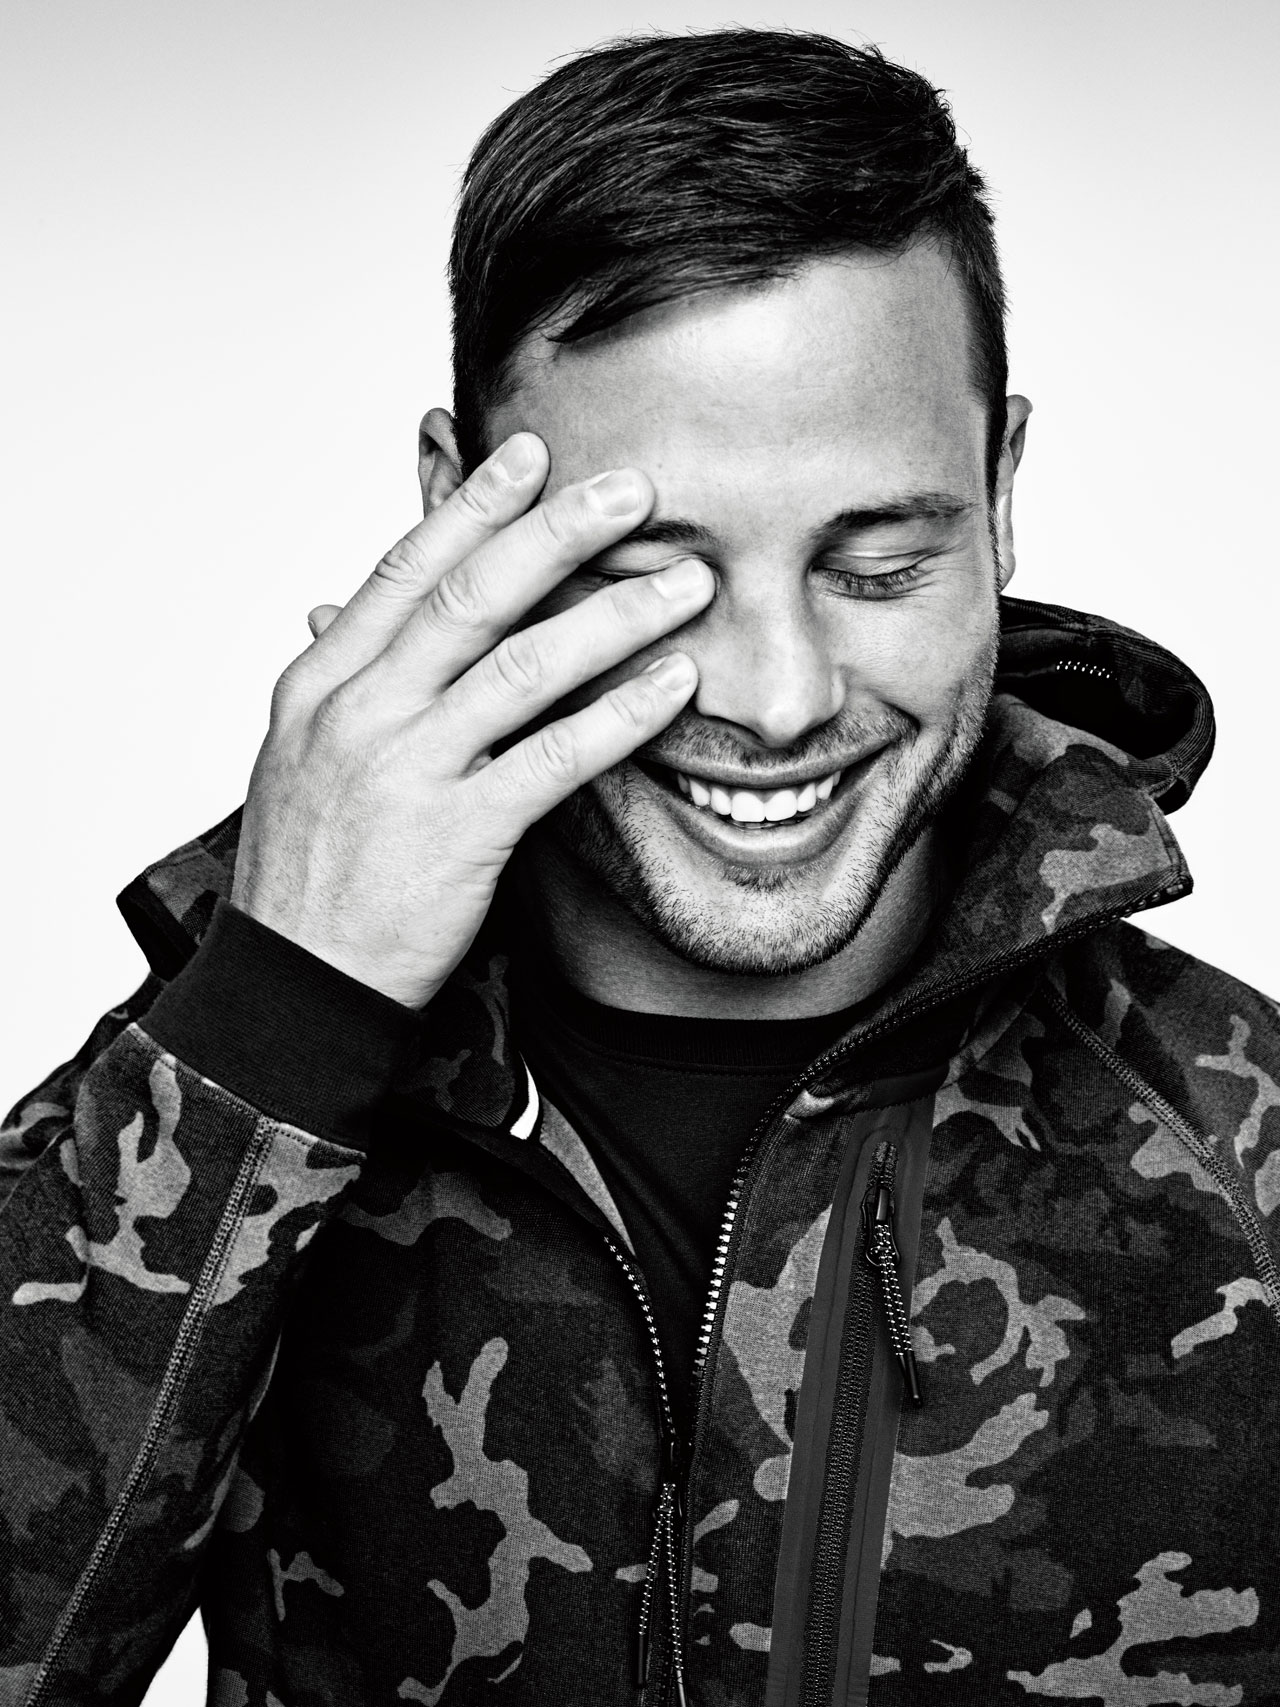 Francois Hougaard, photo © 2015 Nike, Inc.